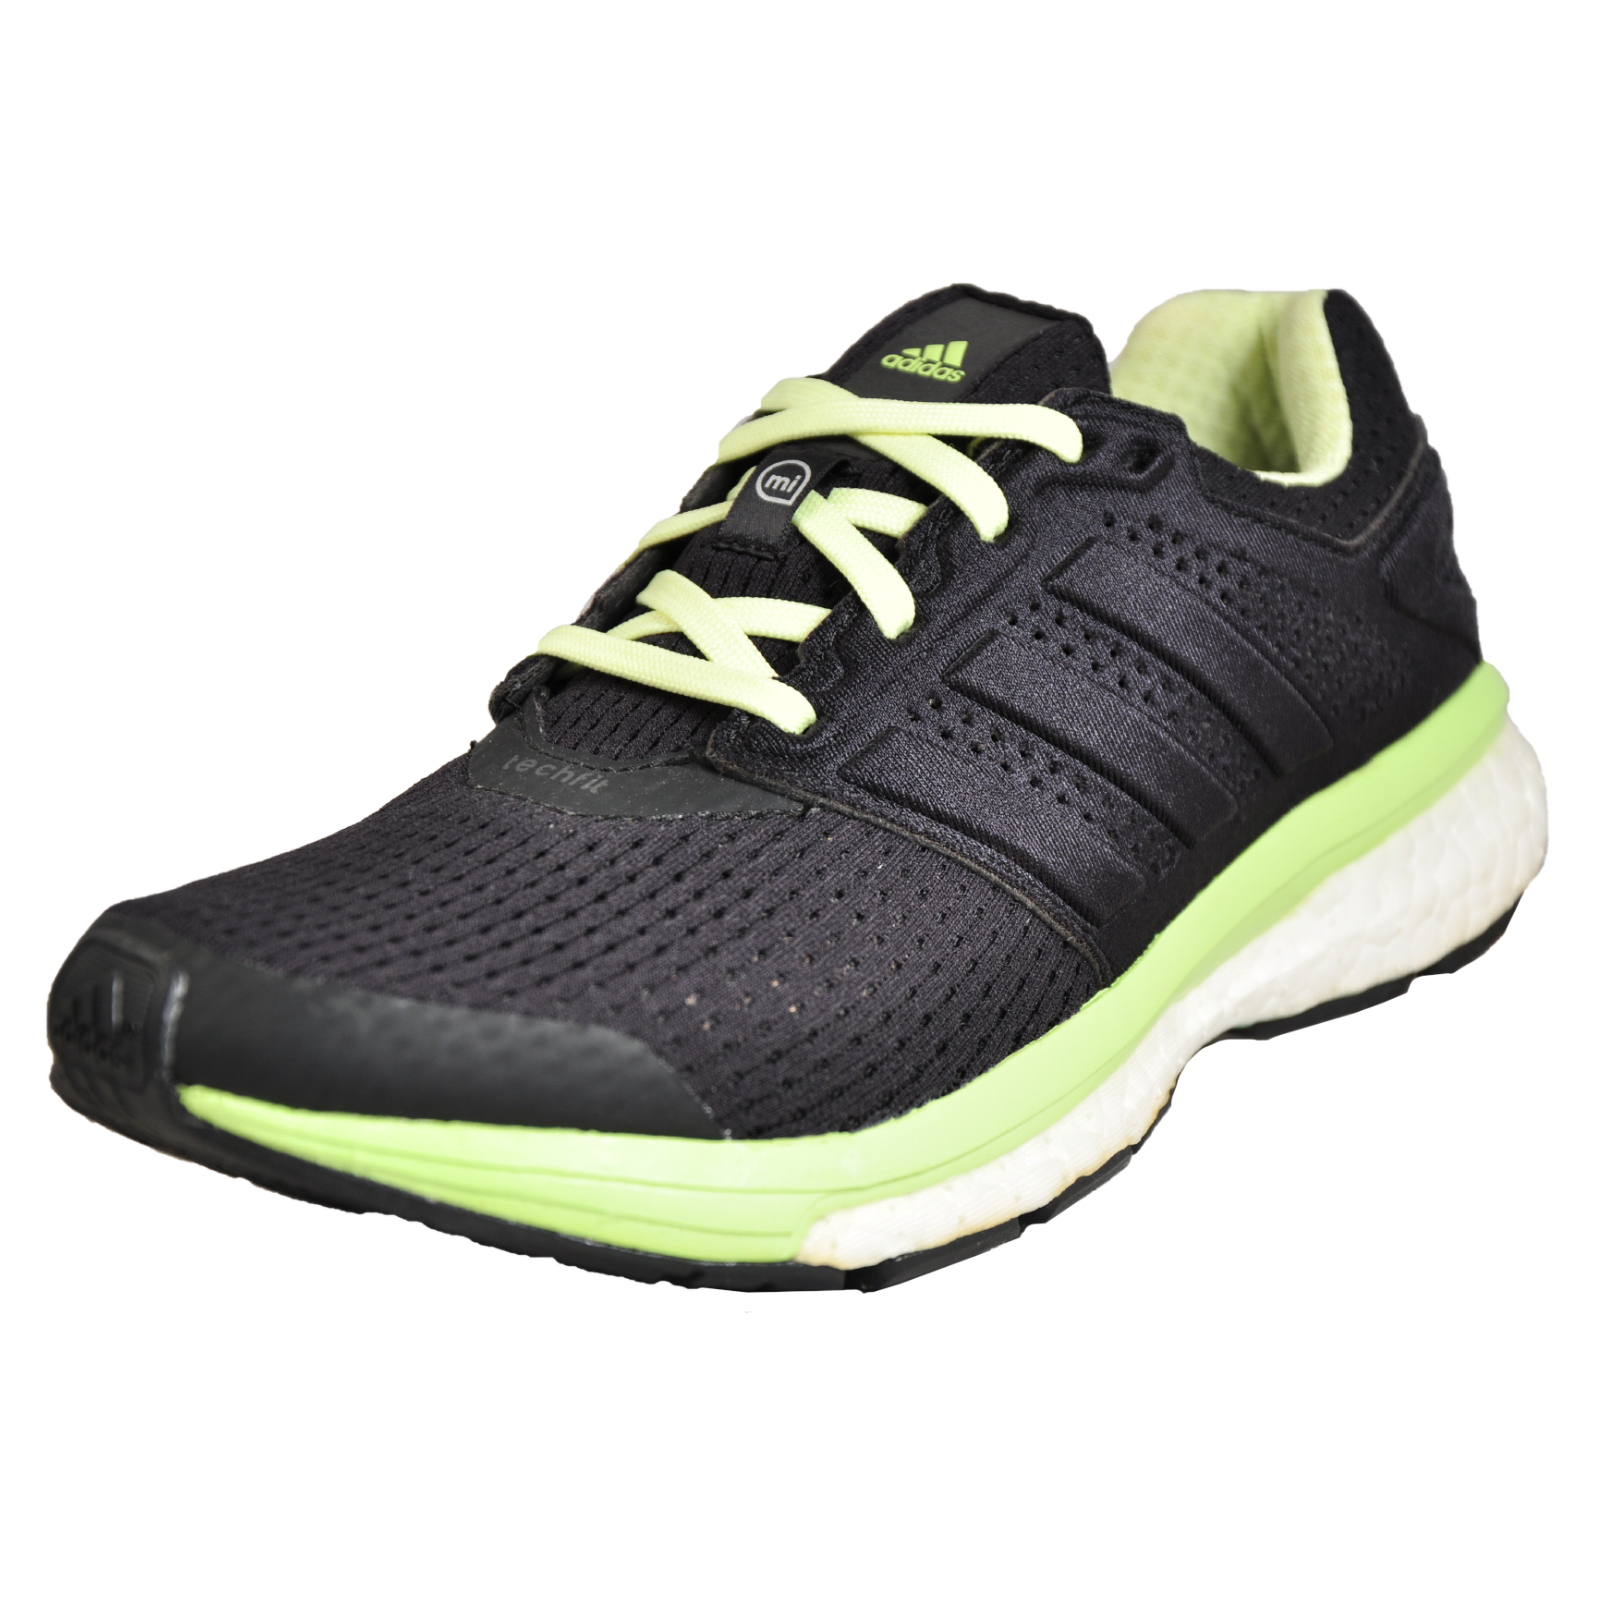 c3392bff4f6f5 Details about Adidas Supernova Glide Boost 7 Women s Premium Running Shoes  Fitness Trainers